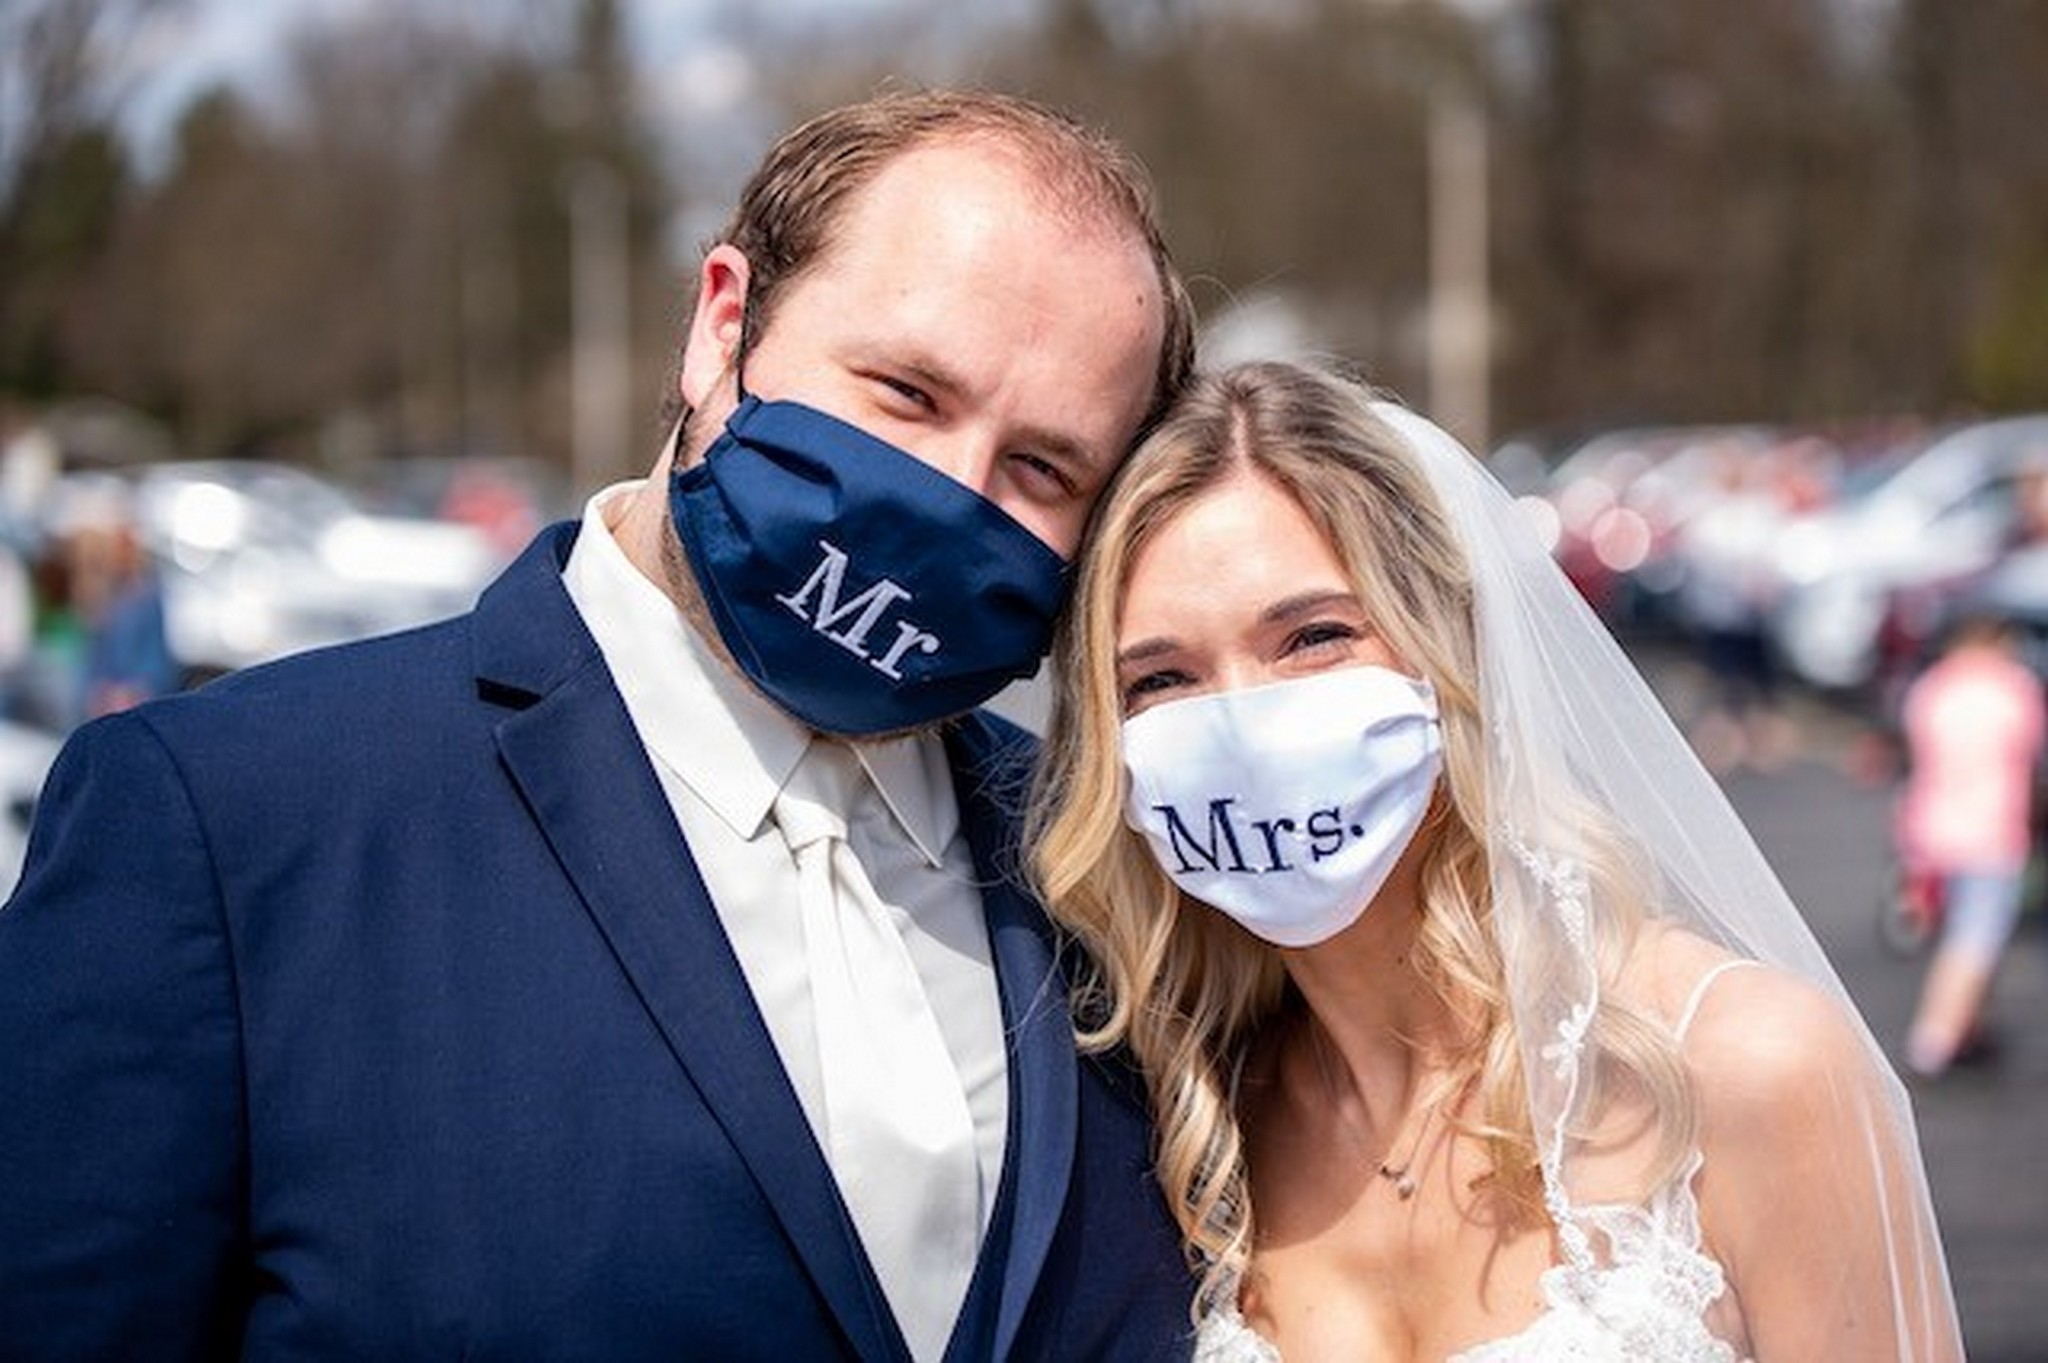 Matching bride and groom masks